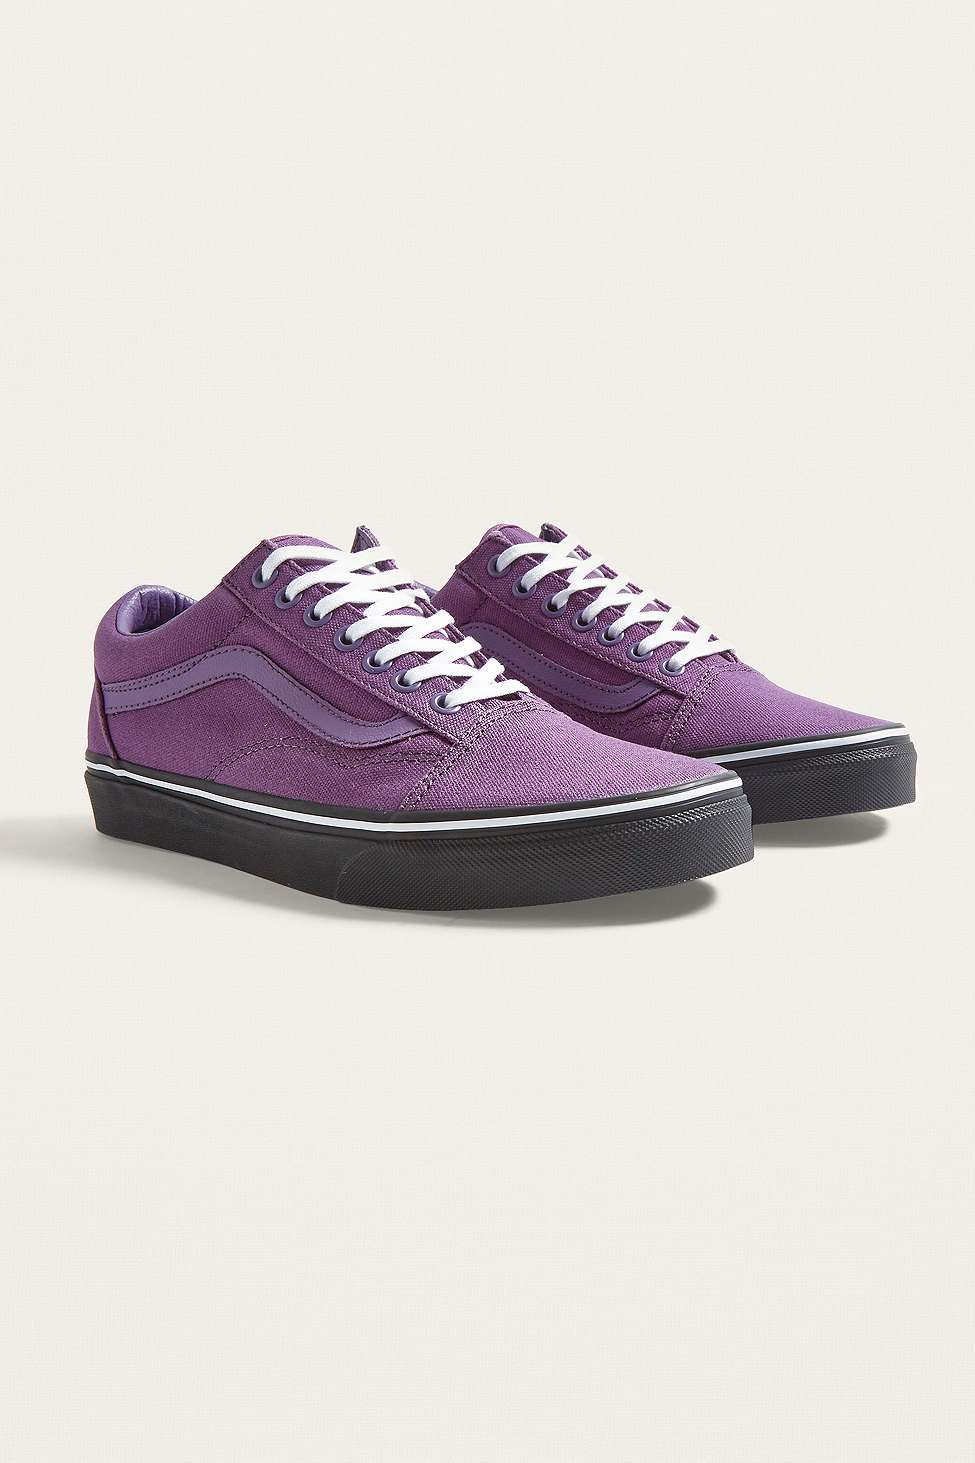 vans old skool purple black